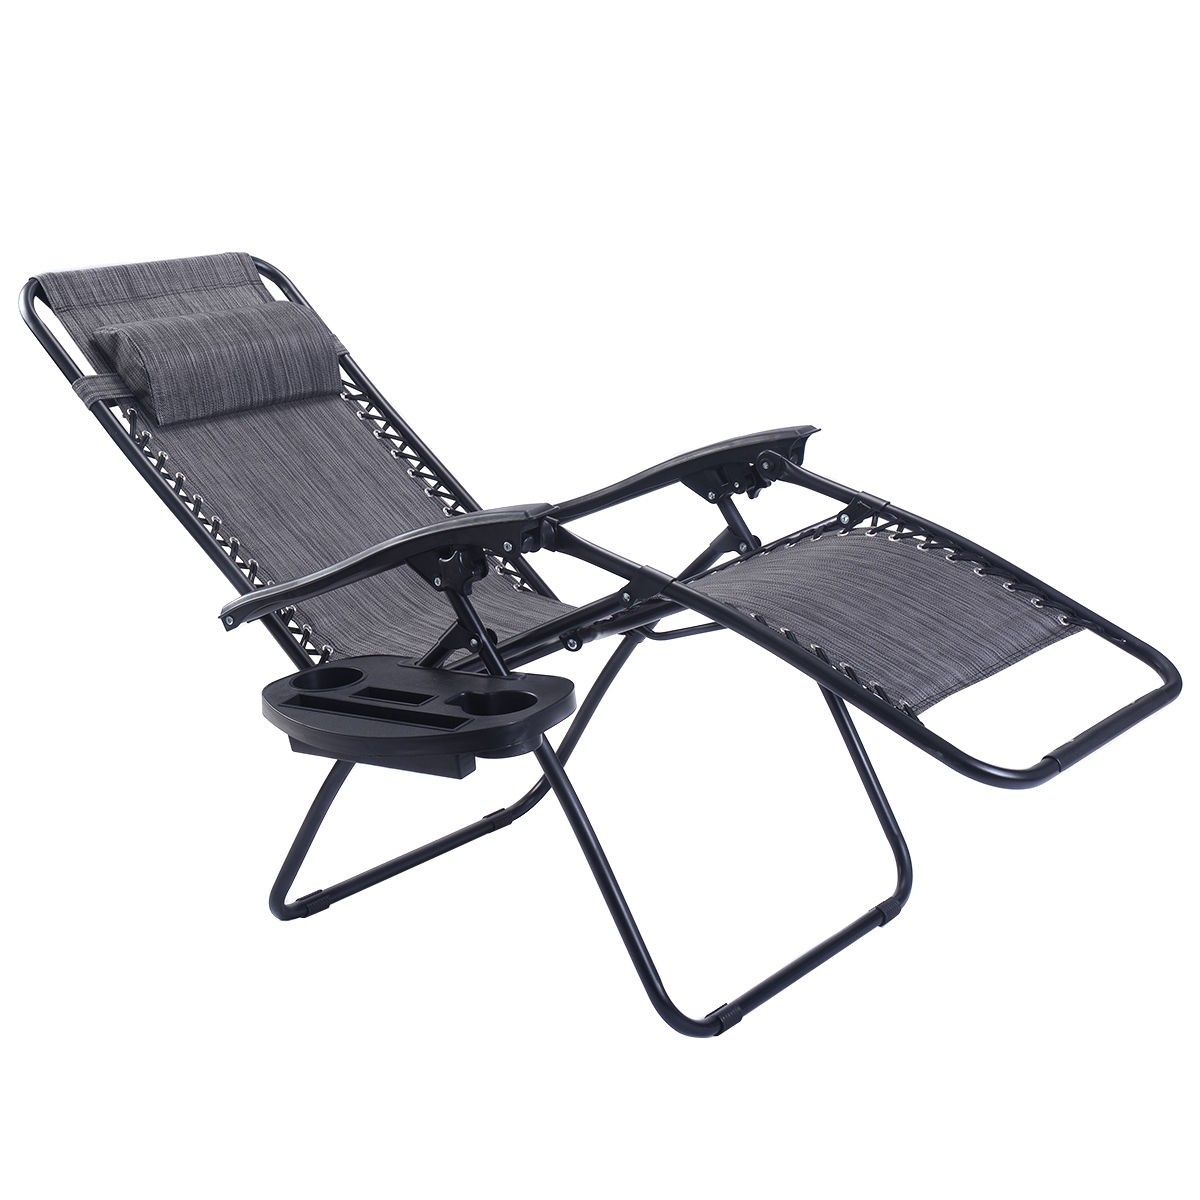 Outdoor Folding Zero Gravity Reclining Lounge Chair Lounge Chair Outdoor Folding Lounge Chair Lounge Chair